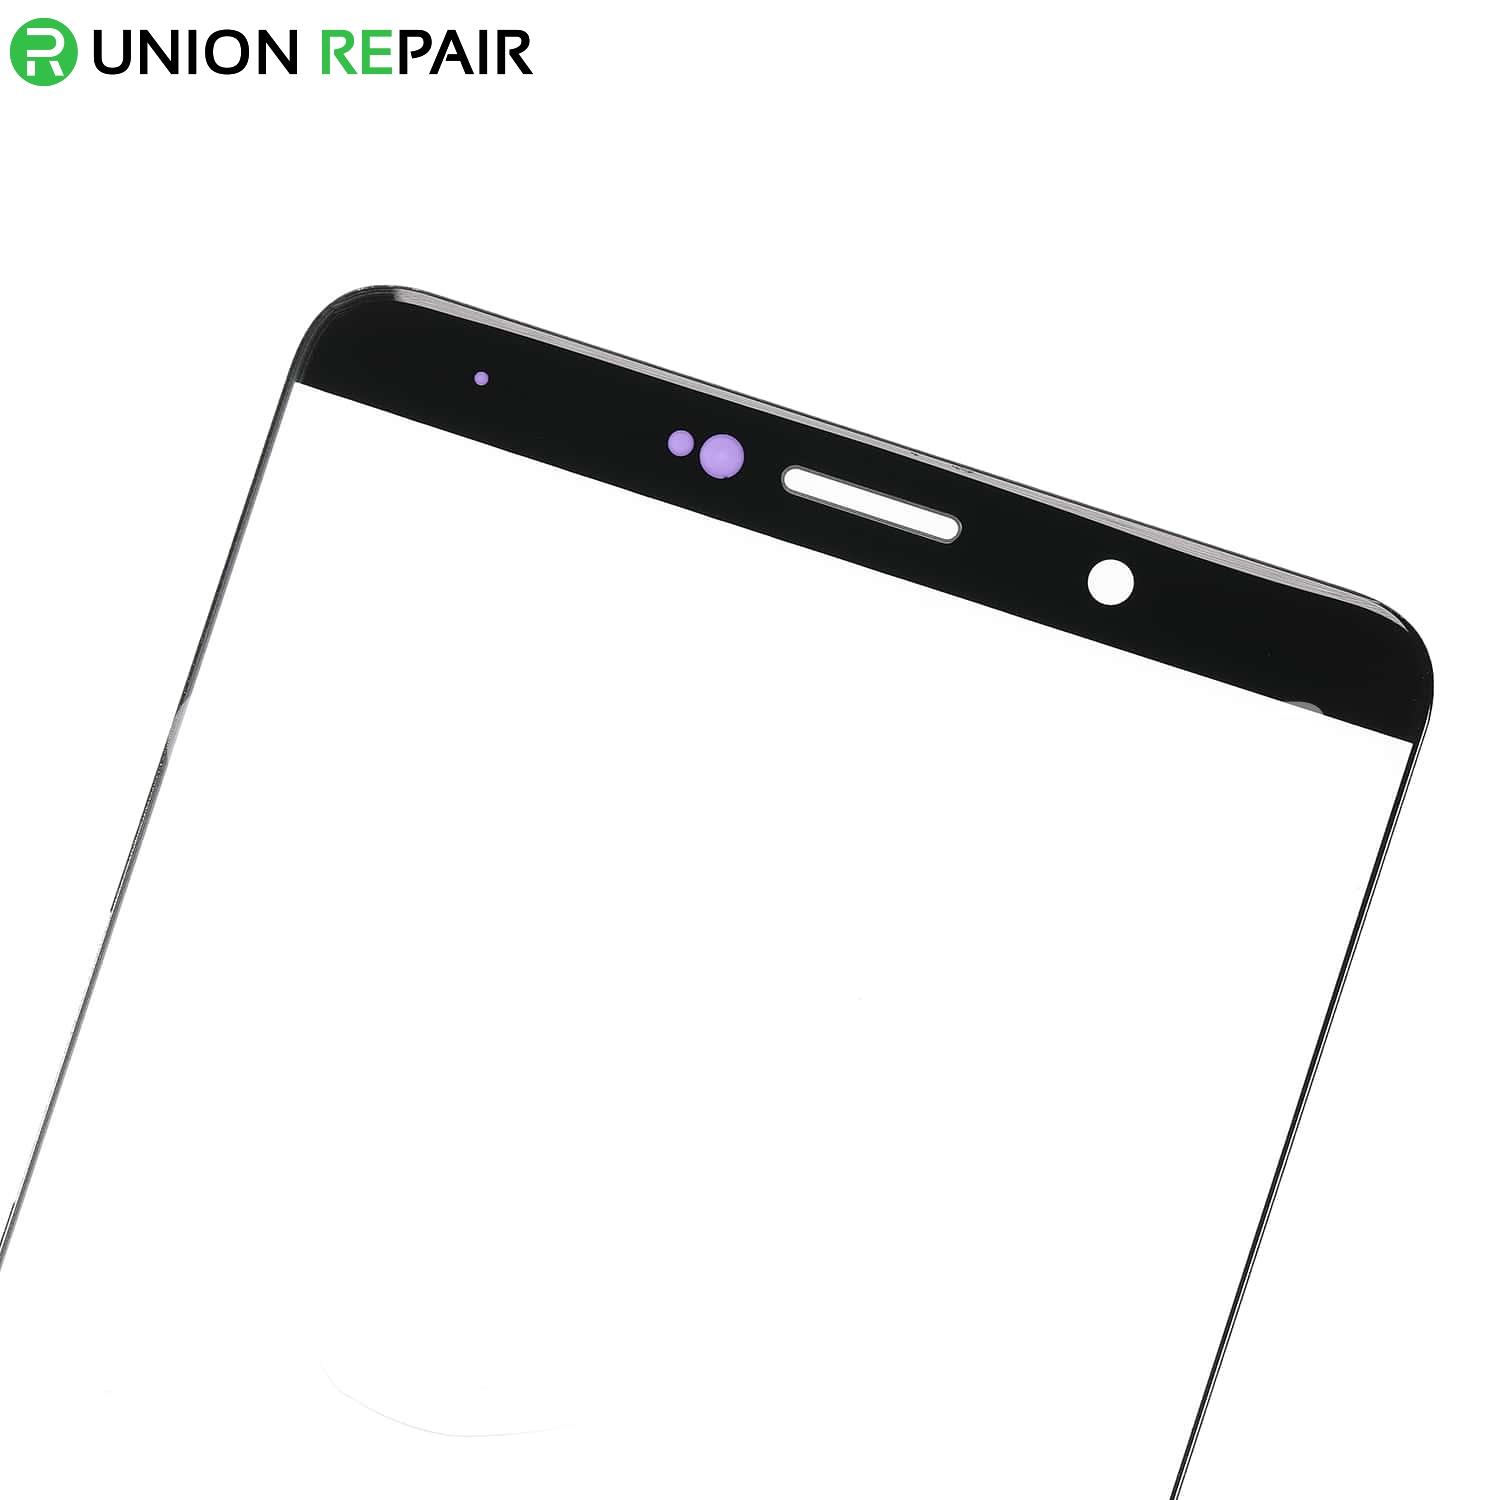 Replacement for Huawei Mate 10 Front Glass - Black, fig. 5